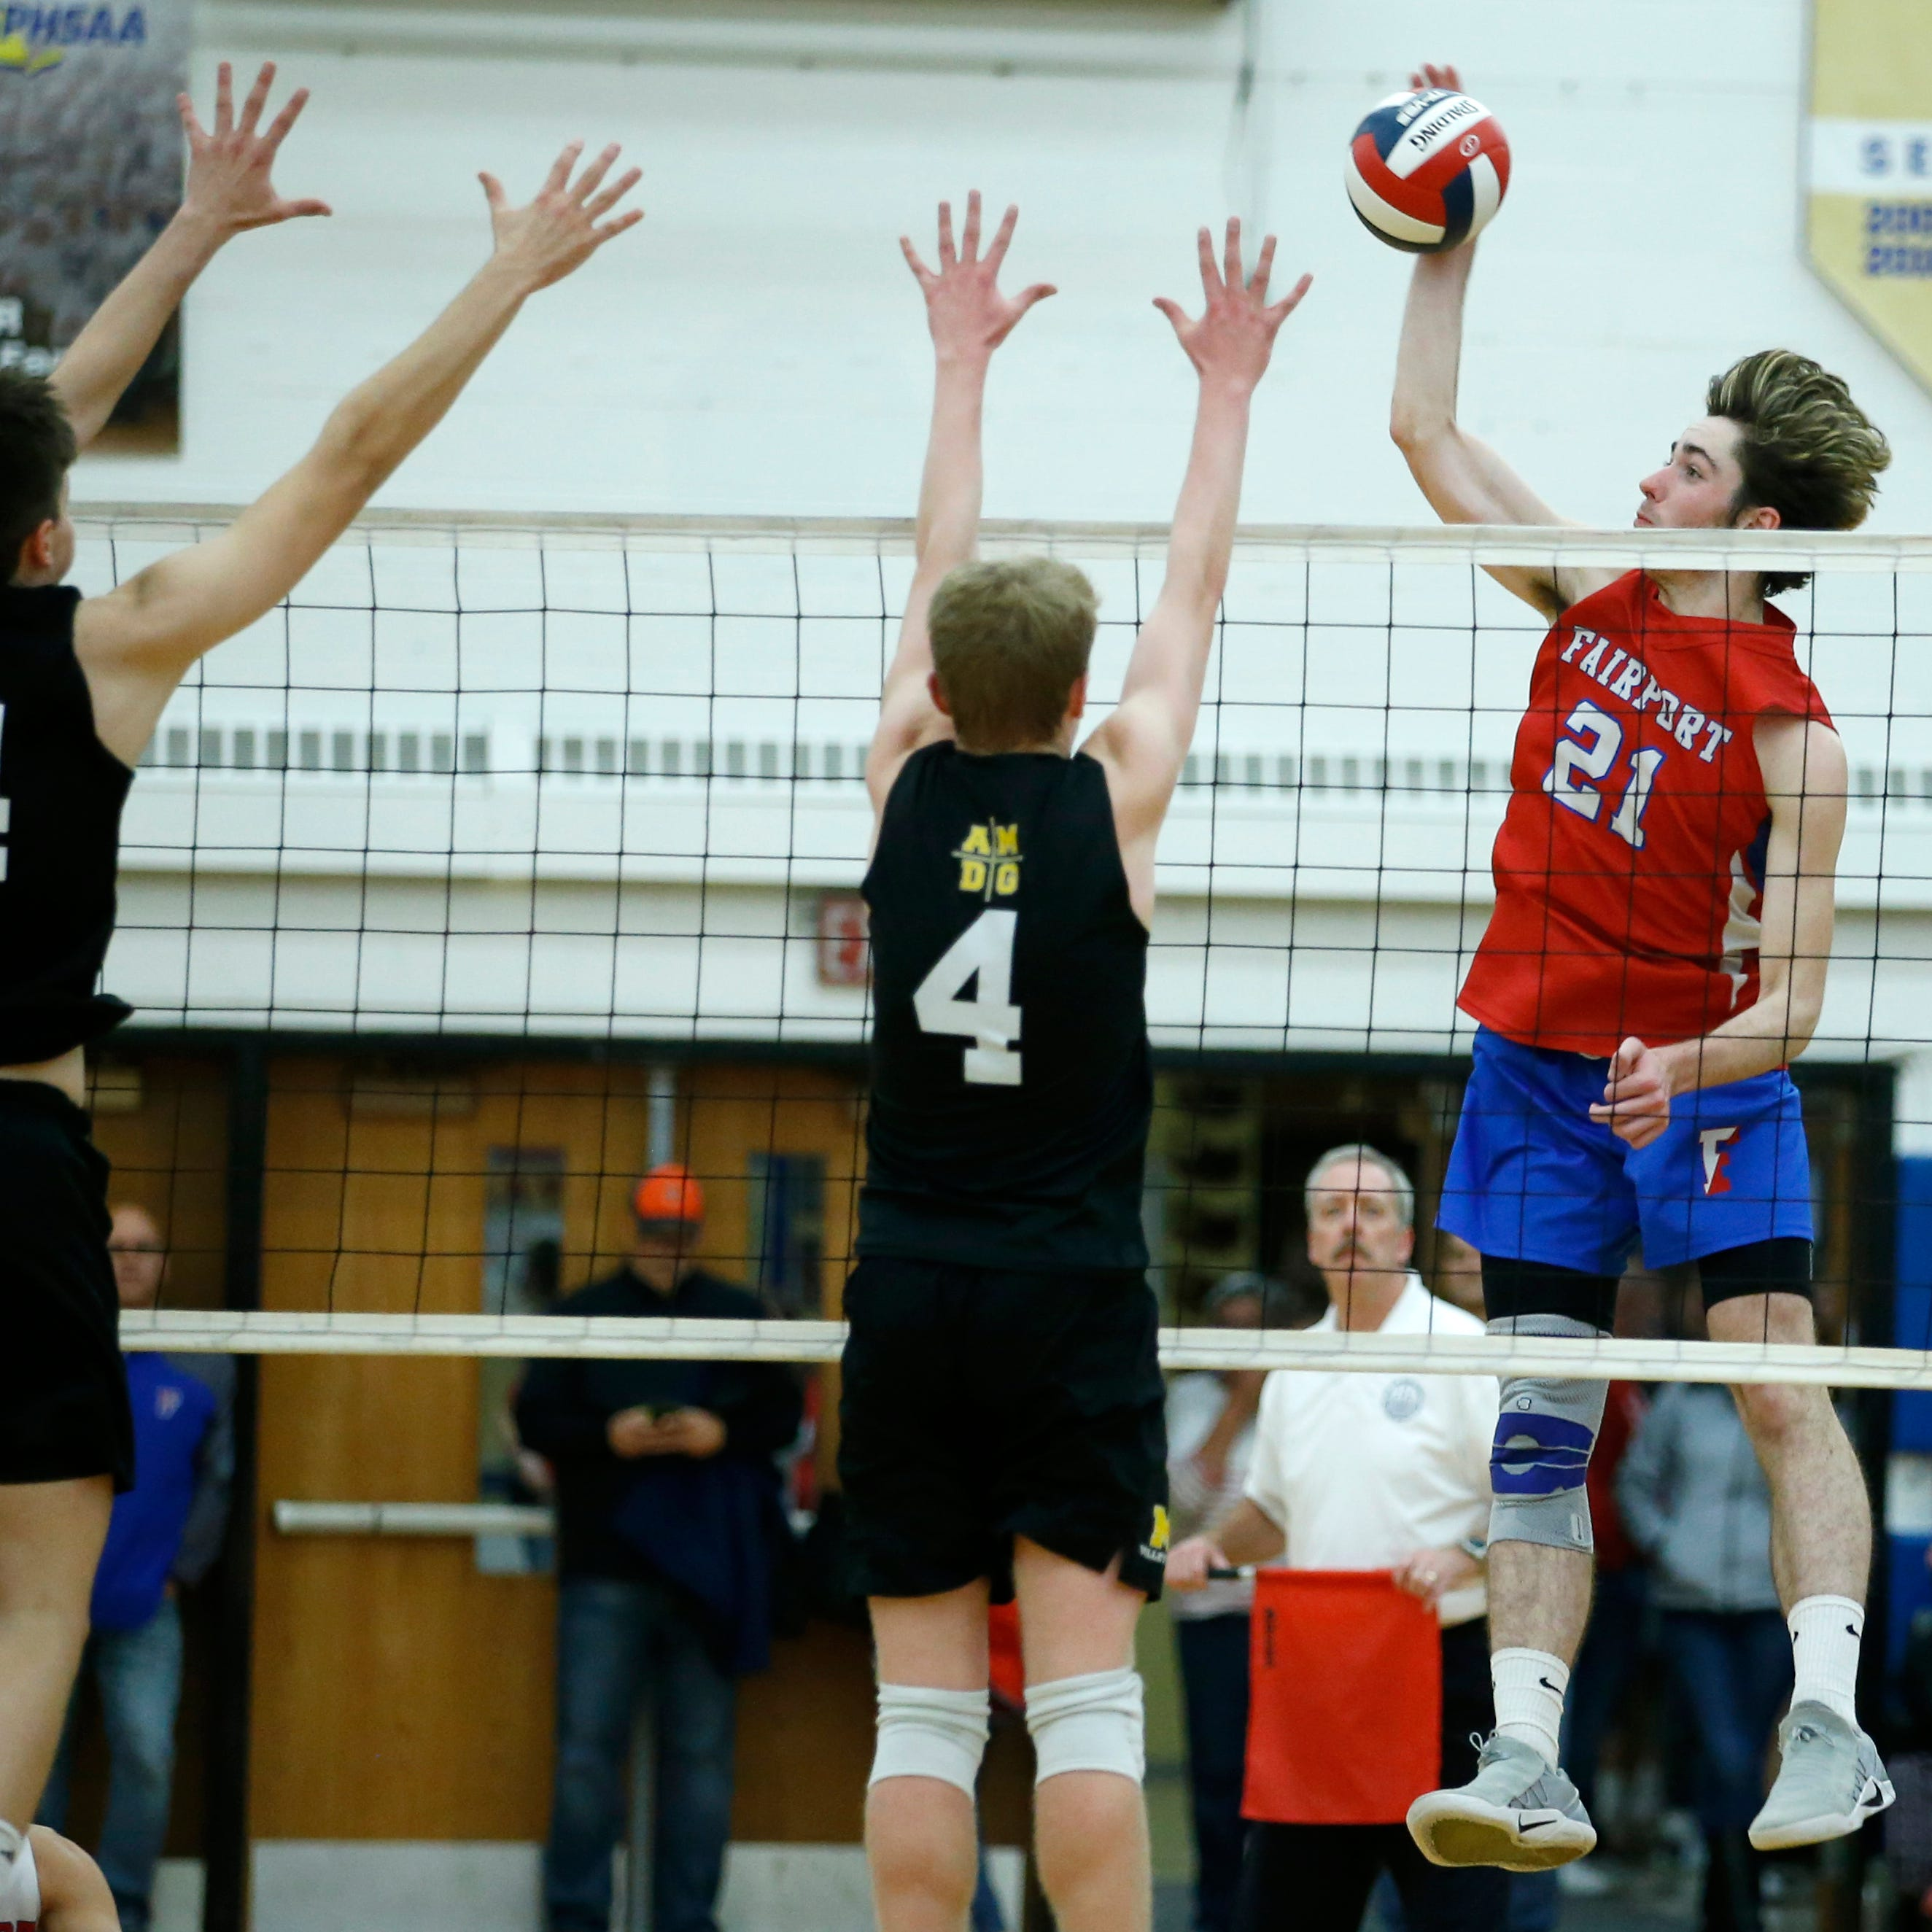 AGR Boys Volleyball Team: These are the best players in Section V